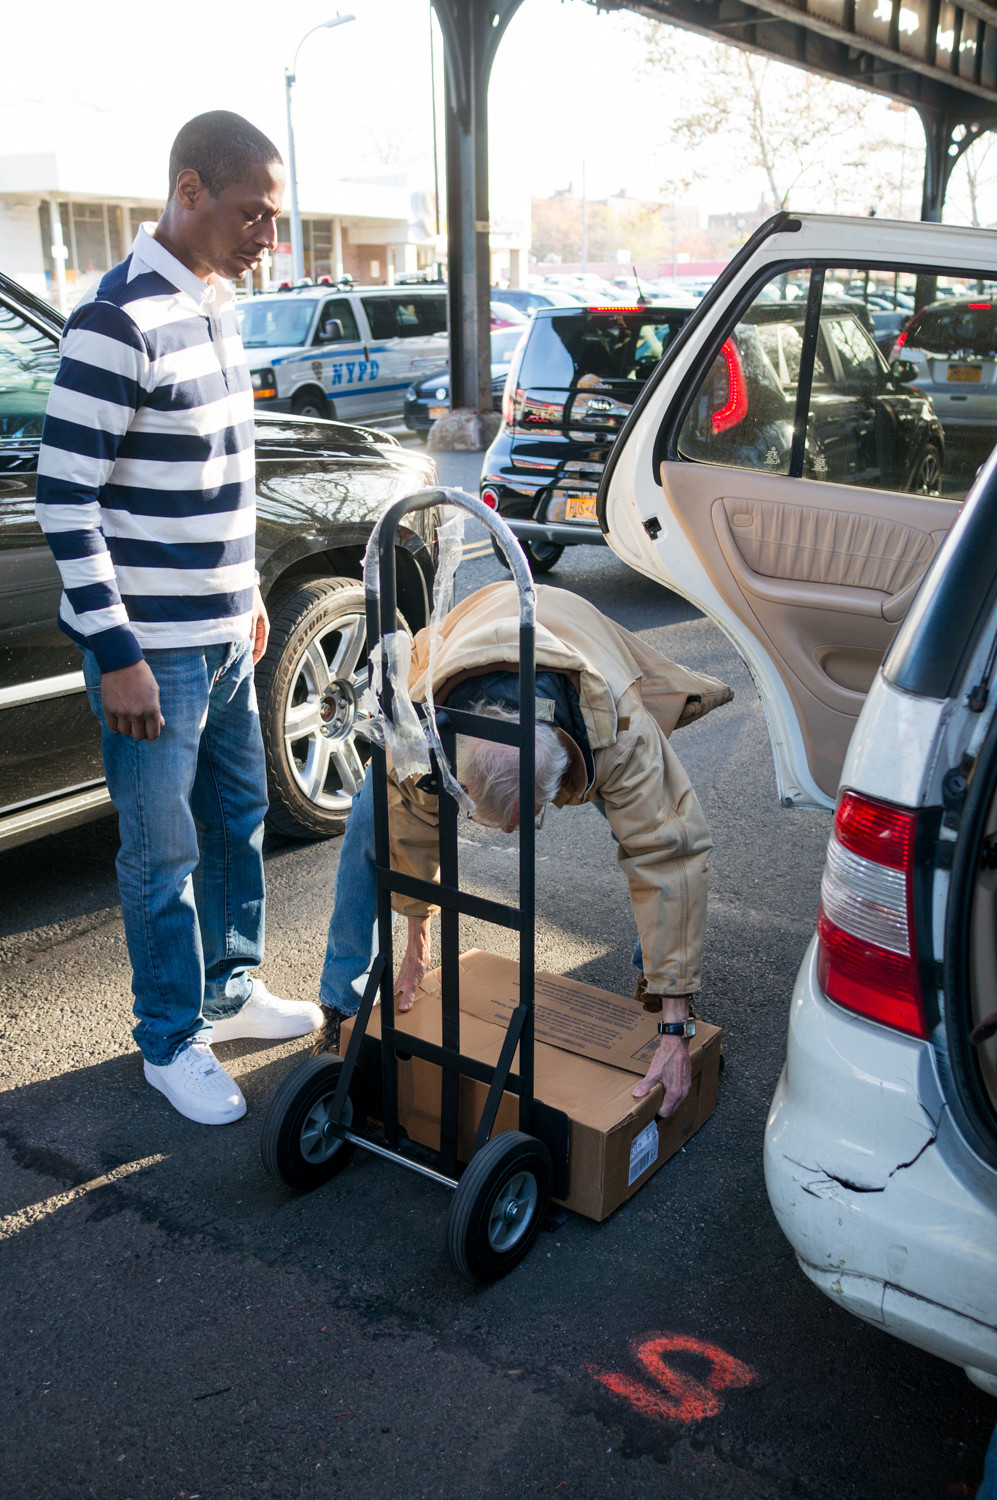 Bill Lewis, a member of Welcoming Neighbors Northwest Bronx, places a box of turkeys on a hand truck. The group raised nearly $2,500 to purchase Thanksgiving meals for families living in the transitional housing facility at 5731 Broadway.